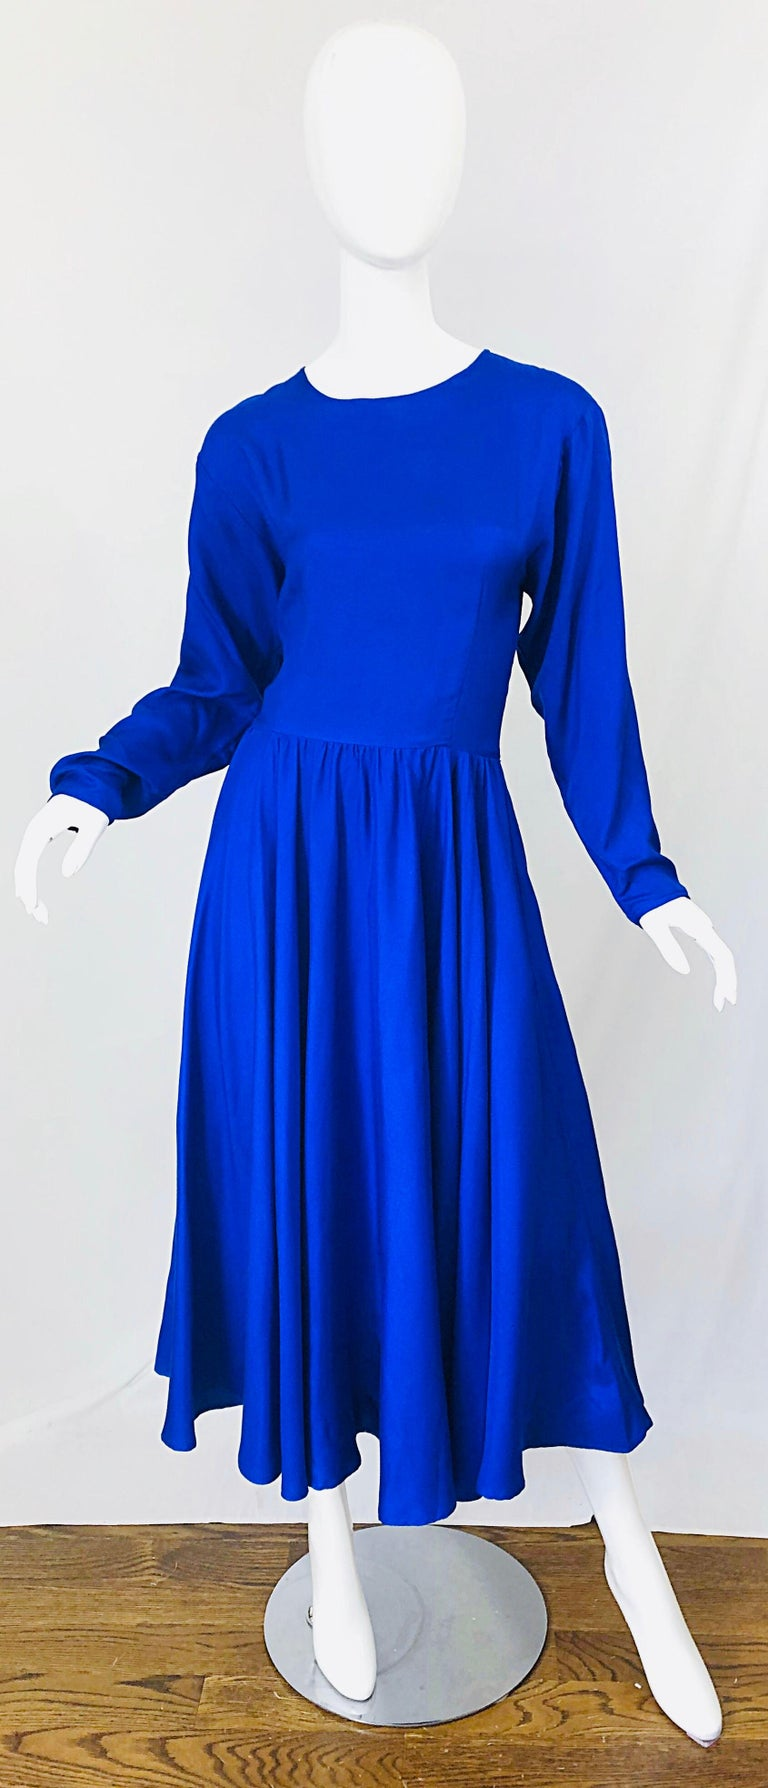 Beautiful DYNASTY royal blue late 1970s silk long dolman sleeve midi dress! Features a slight dolman sleeve that began to trend in the late 70s and early 80s. Beautiful and flattering fit, with so much attention to details. Hidden zipper up the back